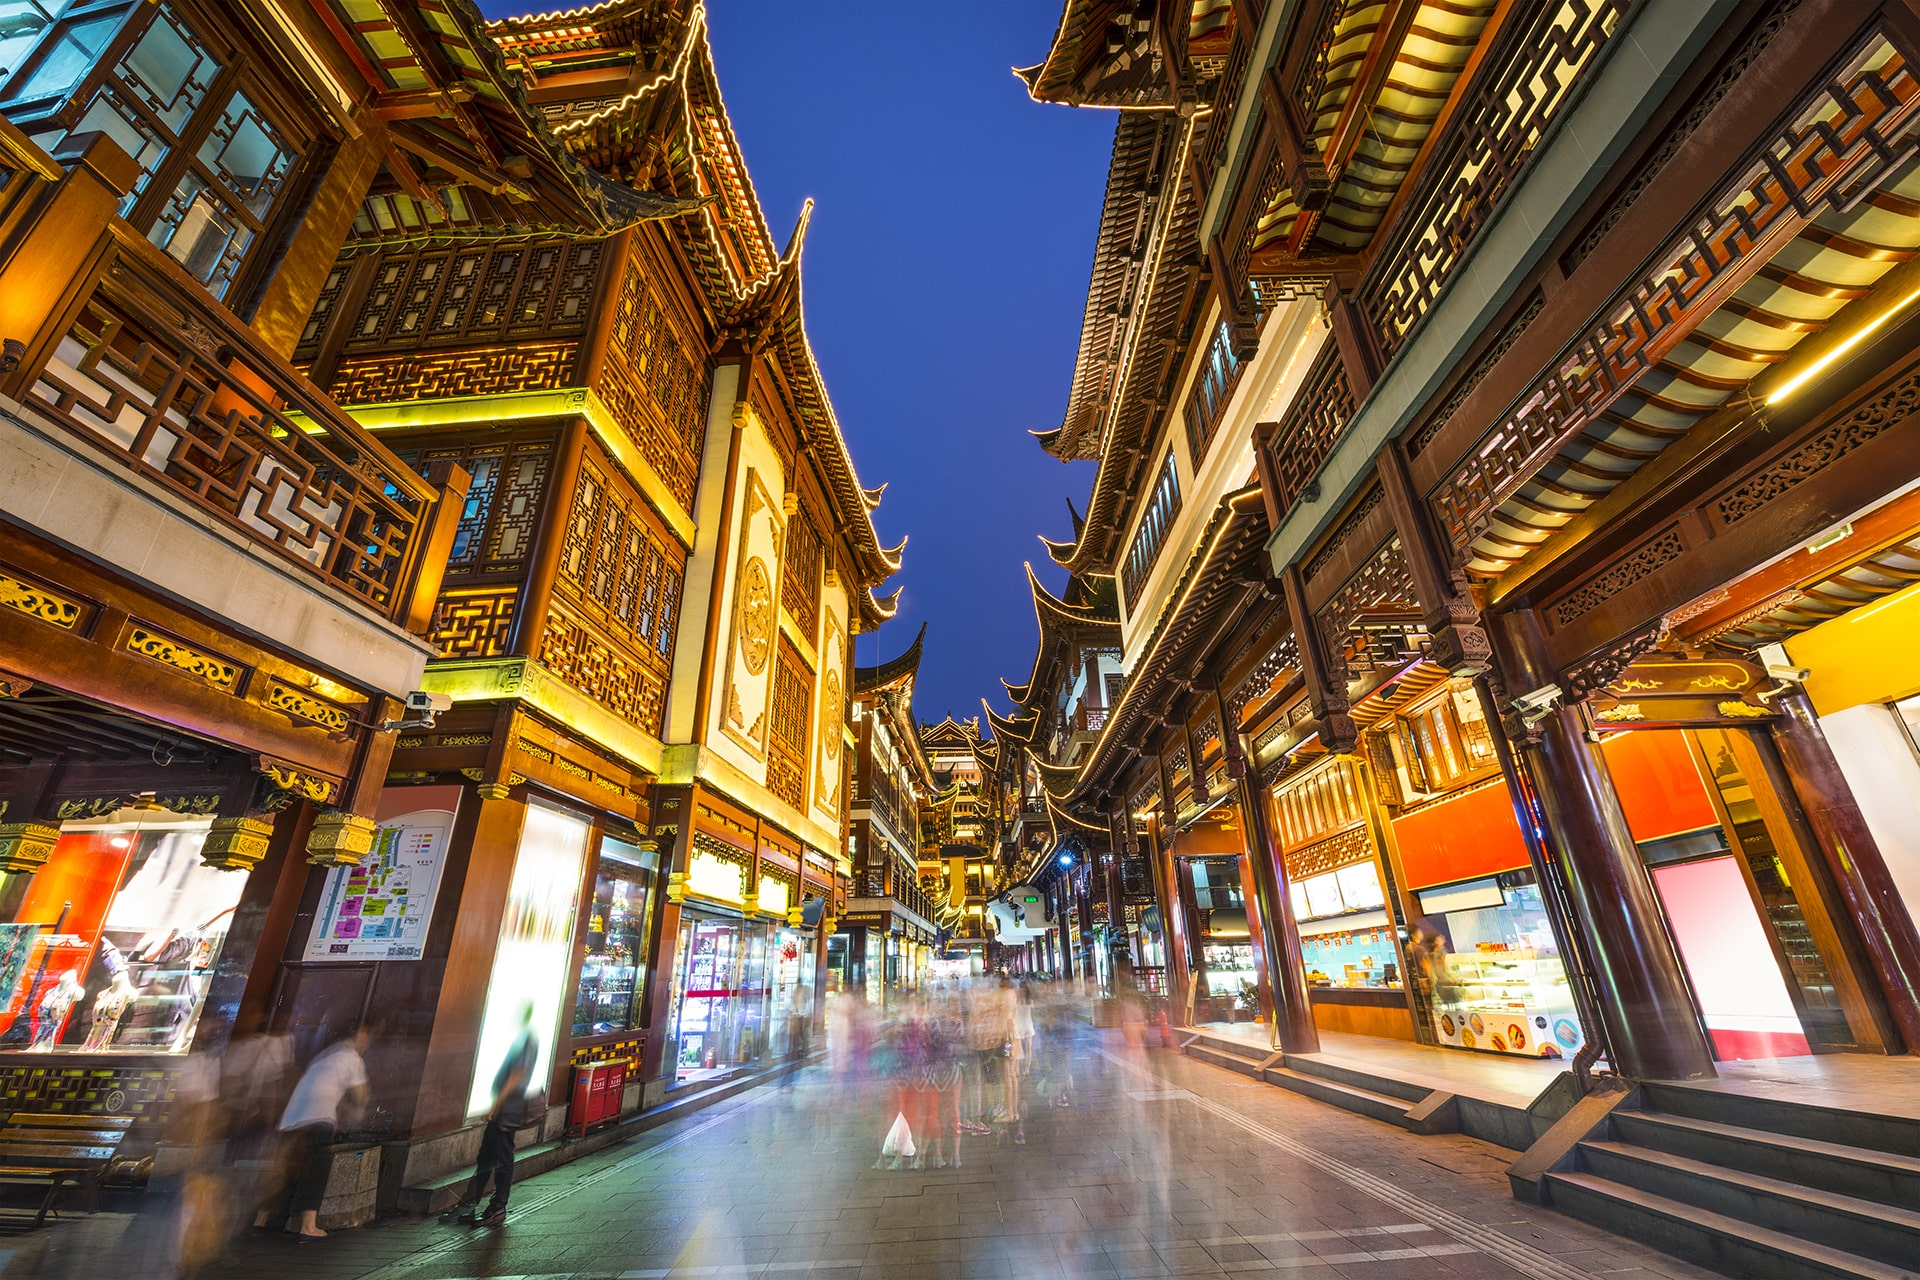 City Temple of Shanghai at night